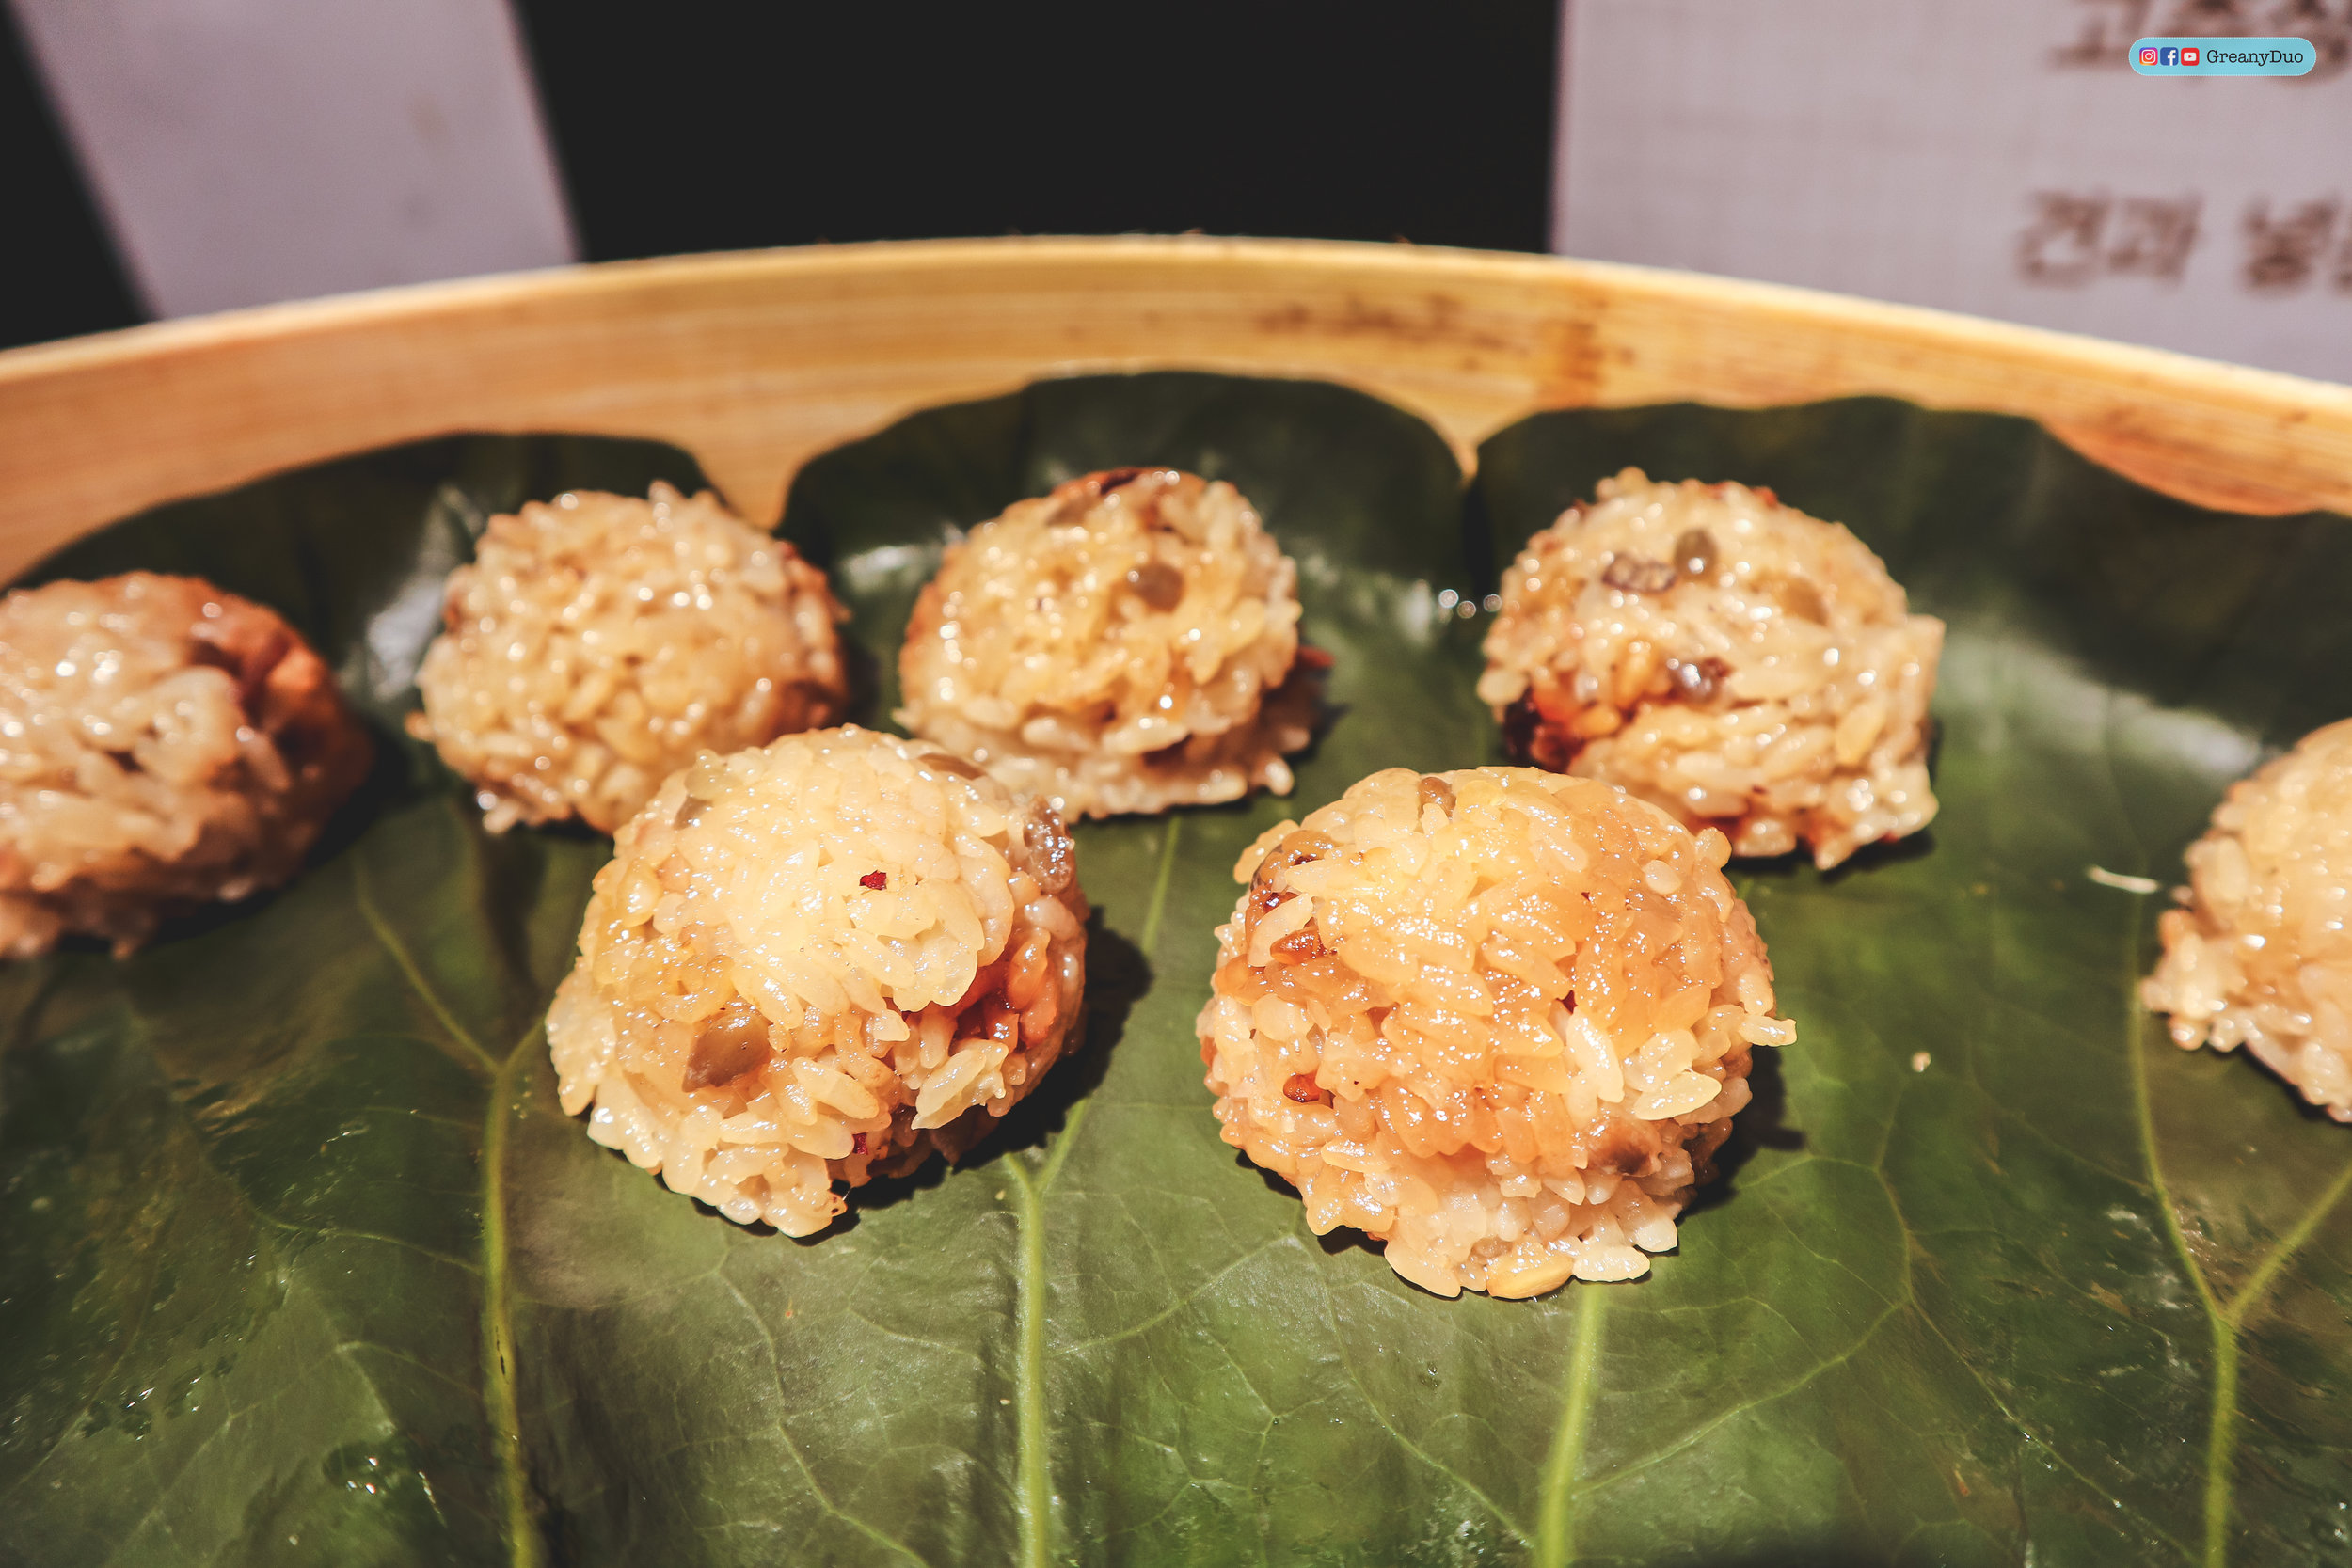 rice wrapped in lotus leaves, nature kitchen buffet, seoul korea